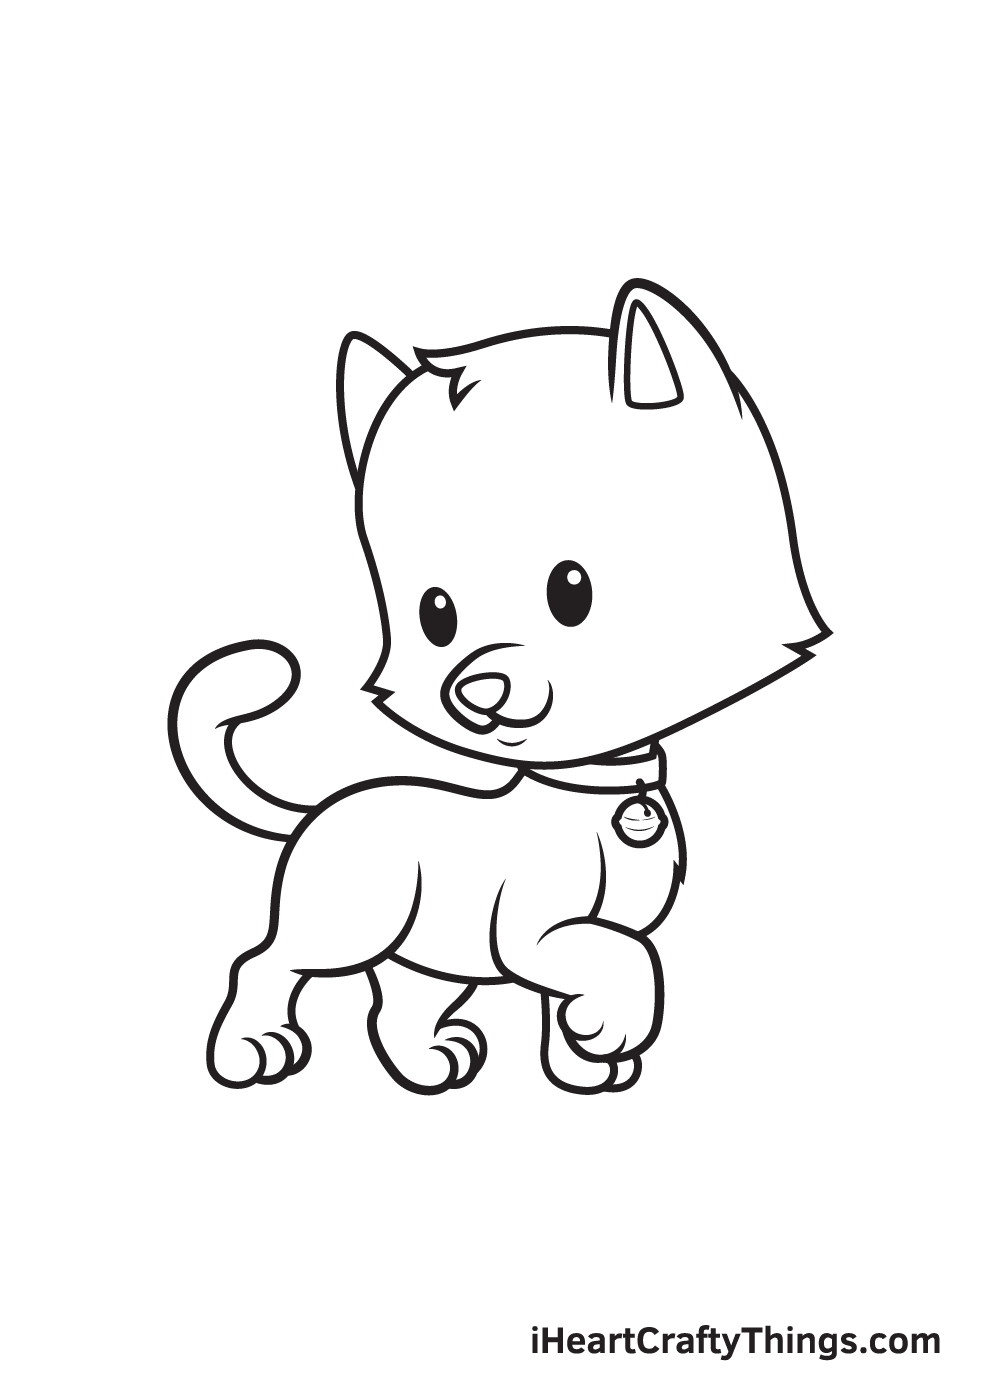 cat drawing – step 9